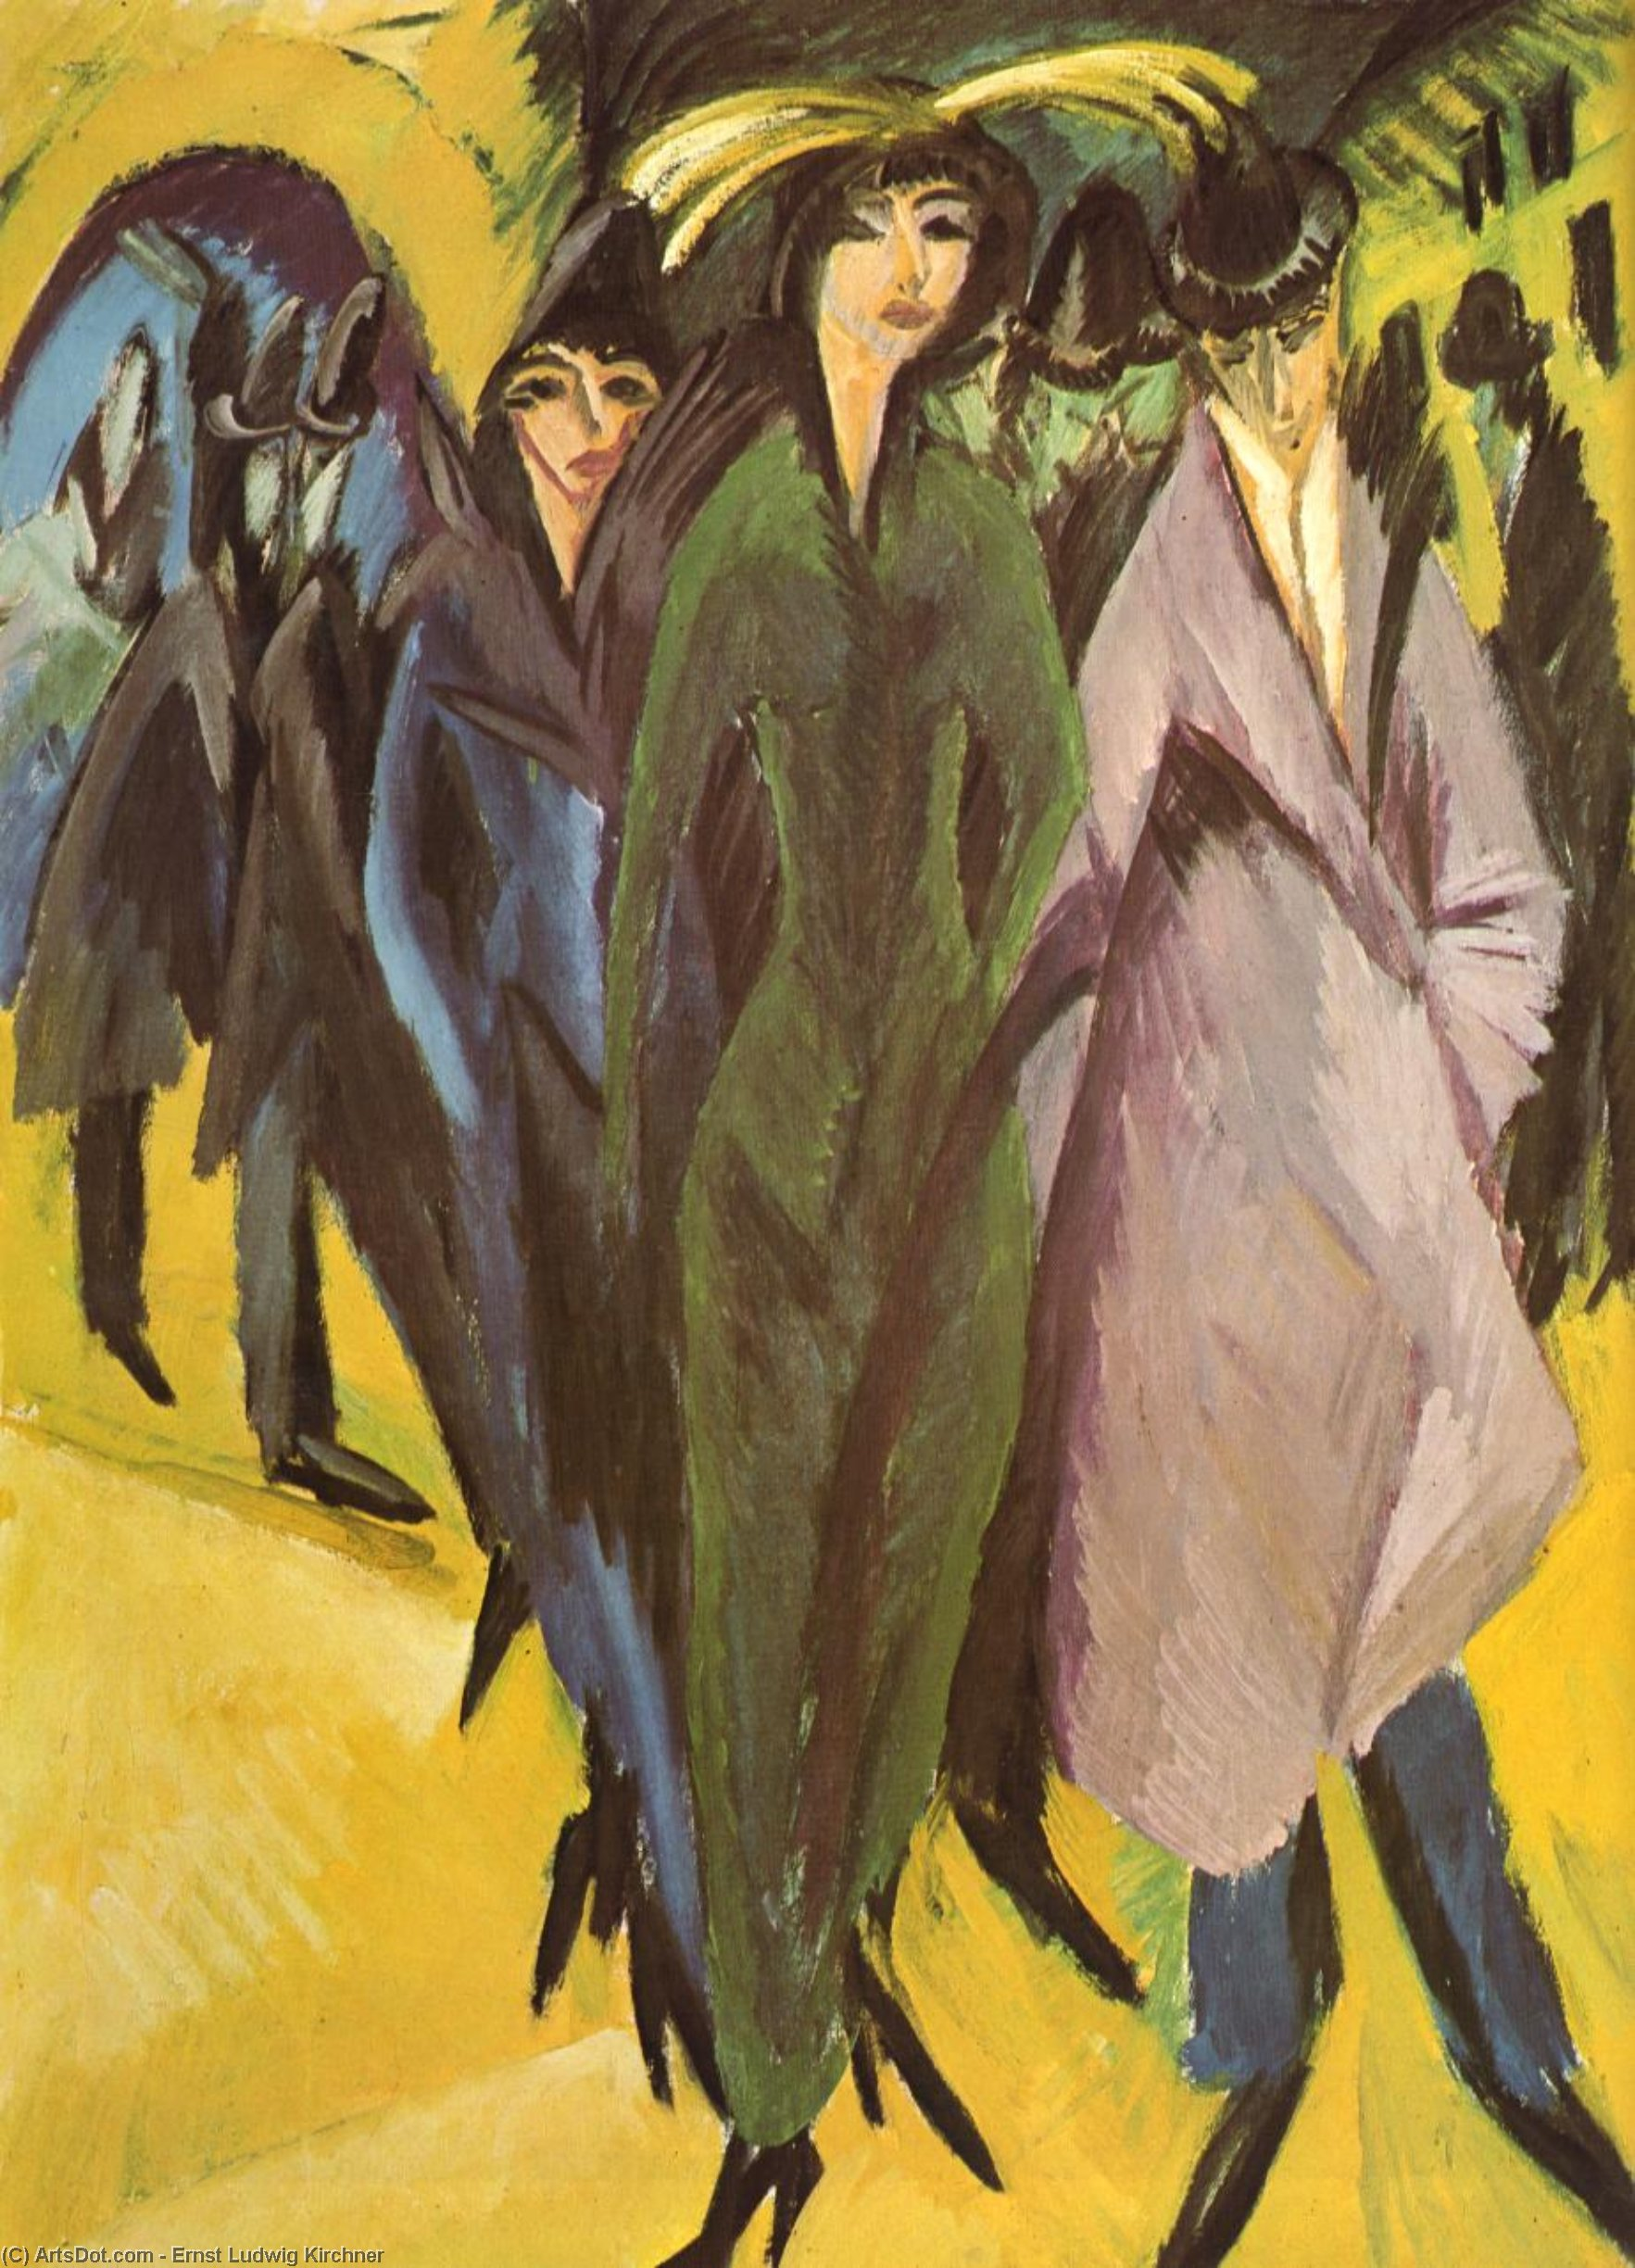 Women in the street by Ernst Ludwig Kirchner (1880-1938, Germany) | Art Reproductions Ernst Ludwig Kirchner | ArtsDot.com